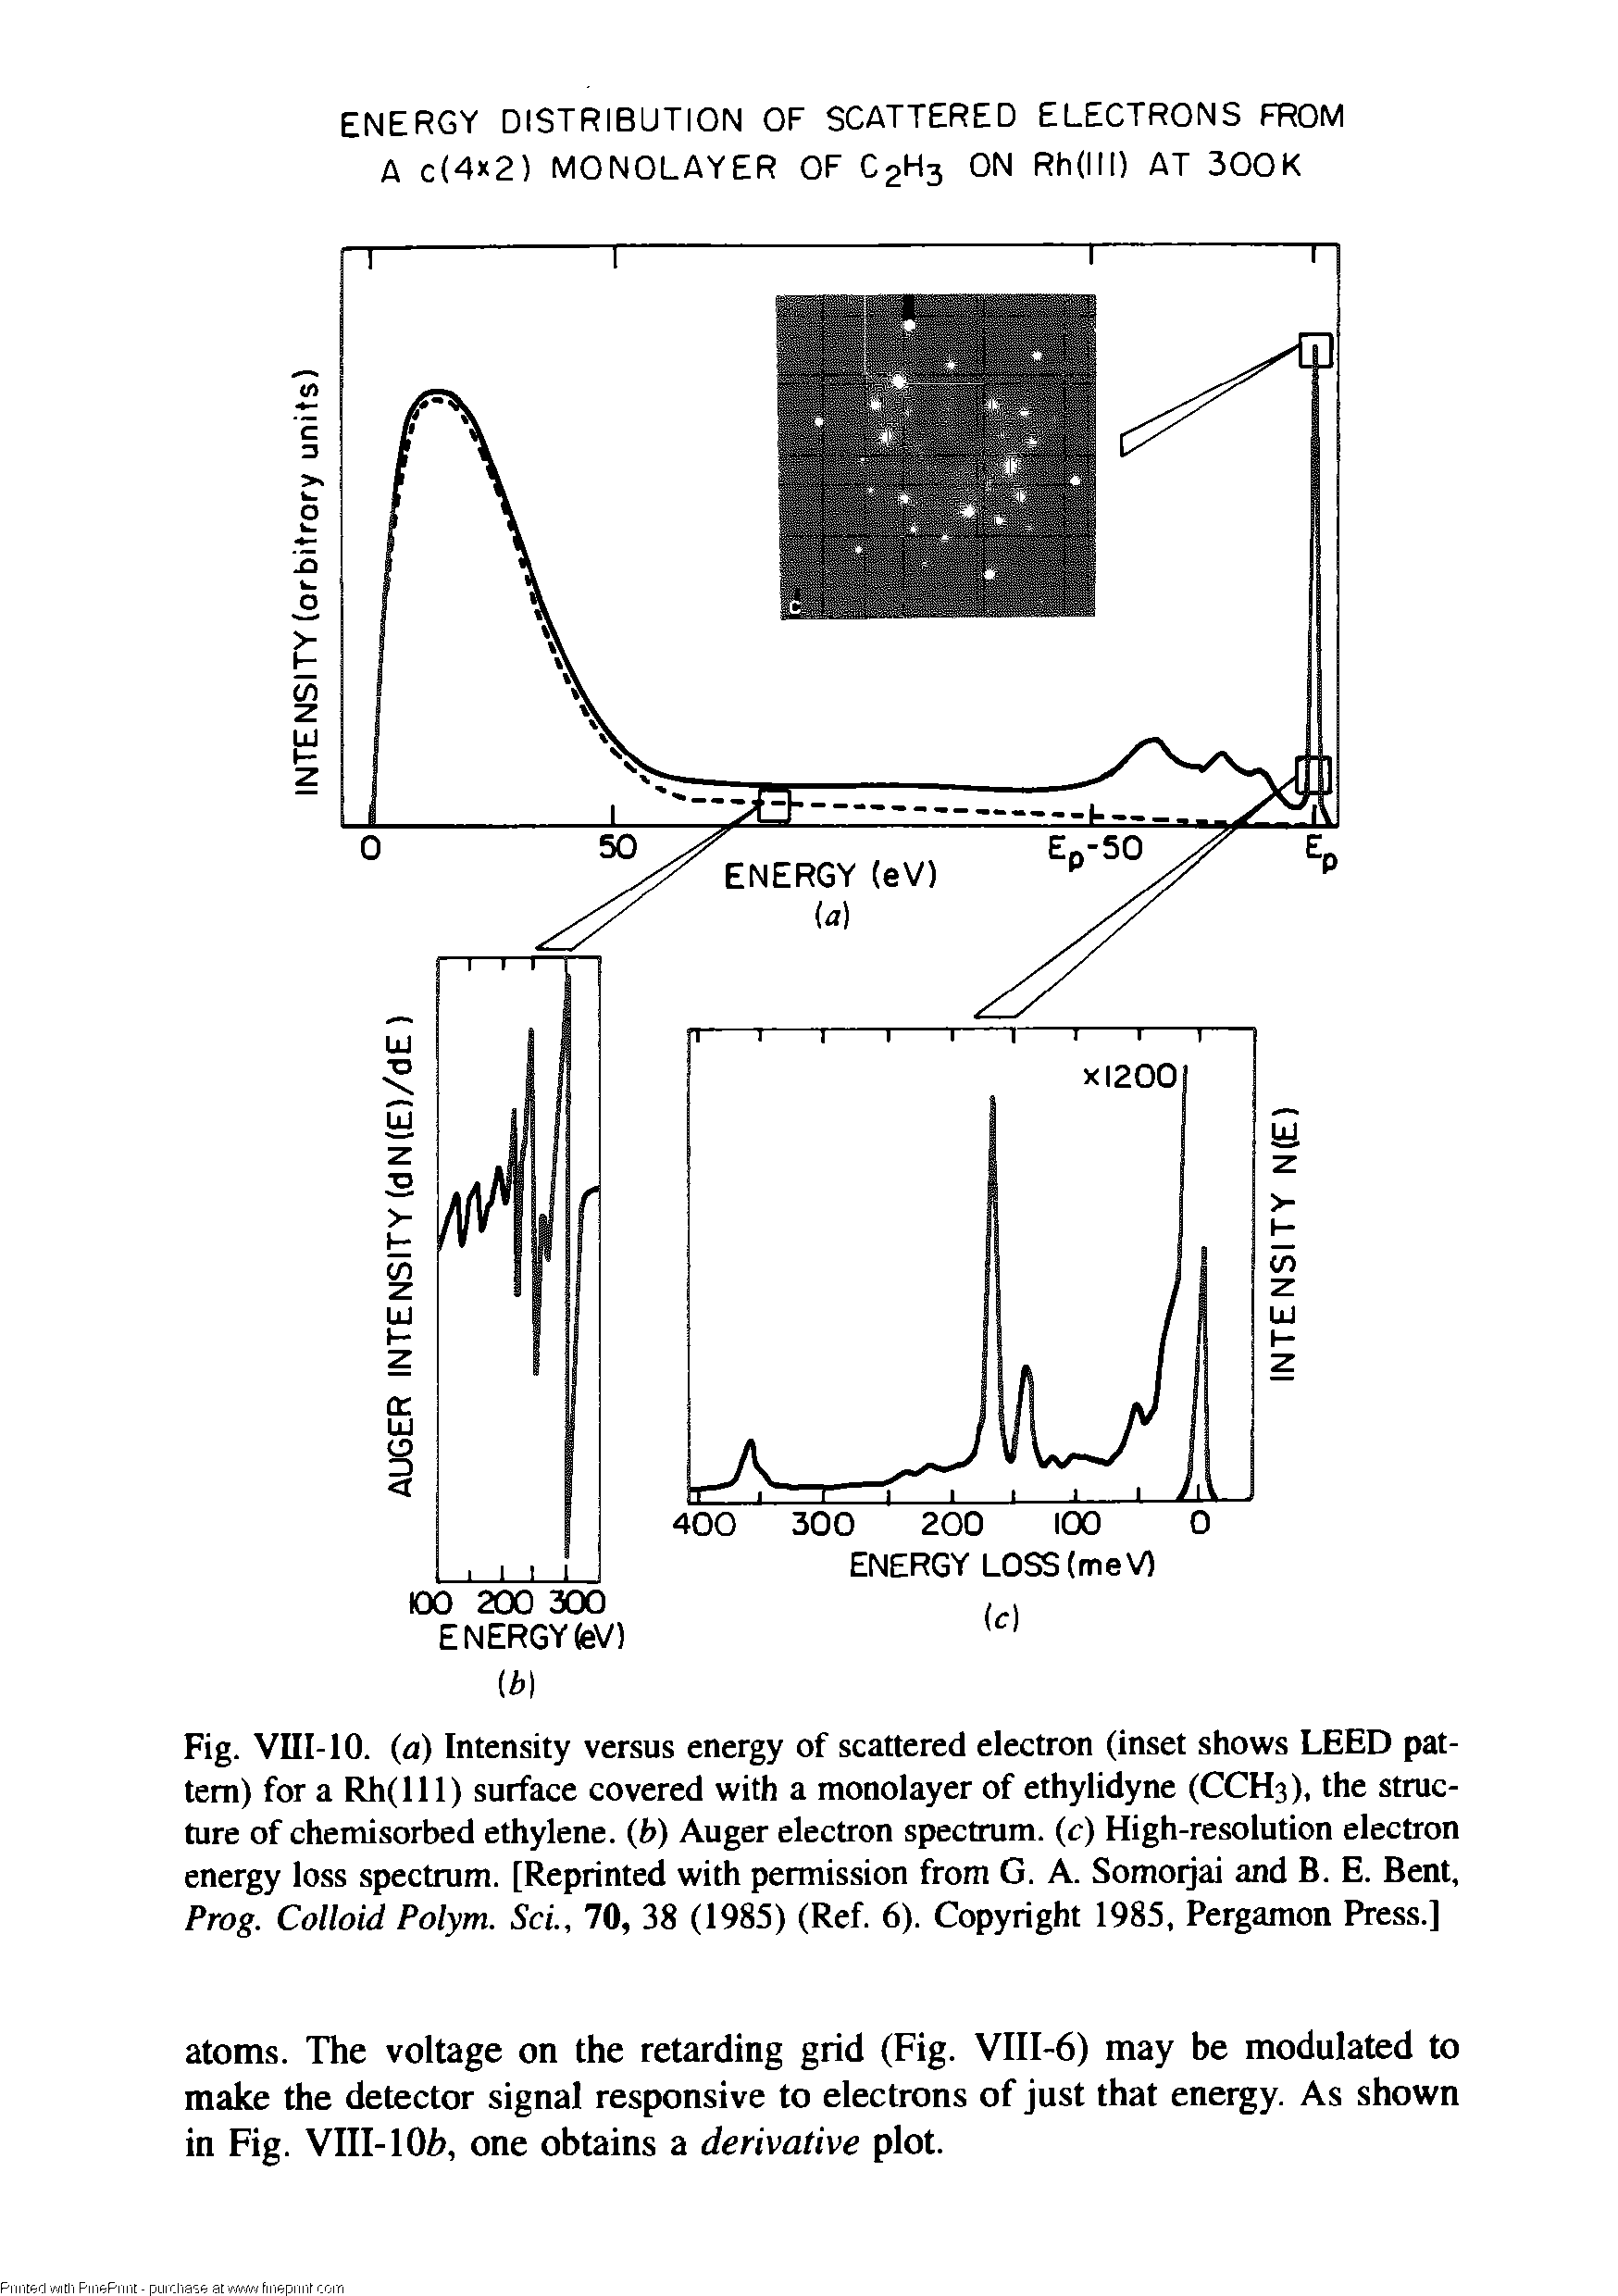 Fig. VIII-10. (a) Intensity versus energy of scattered electron (inset shows LEED pattern) for a Rh(lll) surface covered with a monolayer of ethylidyne (CCH3), the structure of chemisorbed ethylene, (b) Auger electron spectrum, (c) High-resolution electron energy loss spectrum. [Reprinted with permission from G. A. Somoijai and B. E. Bent, Prog. Colloid Polym. ScL, 70, 38 (1985) (Ref. 6). Copyright 1985, Pergamon Press.]...